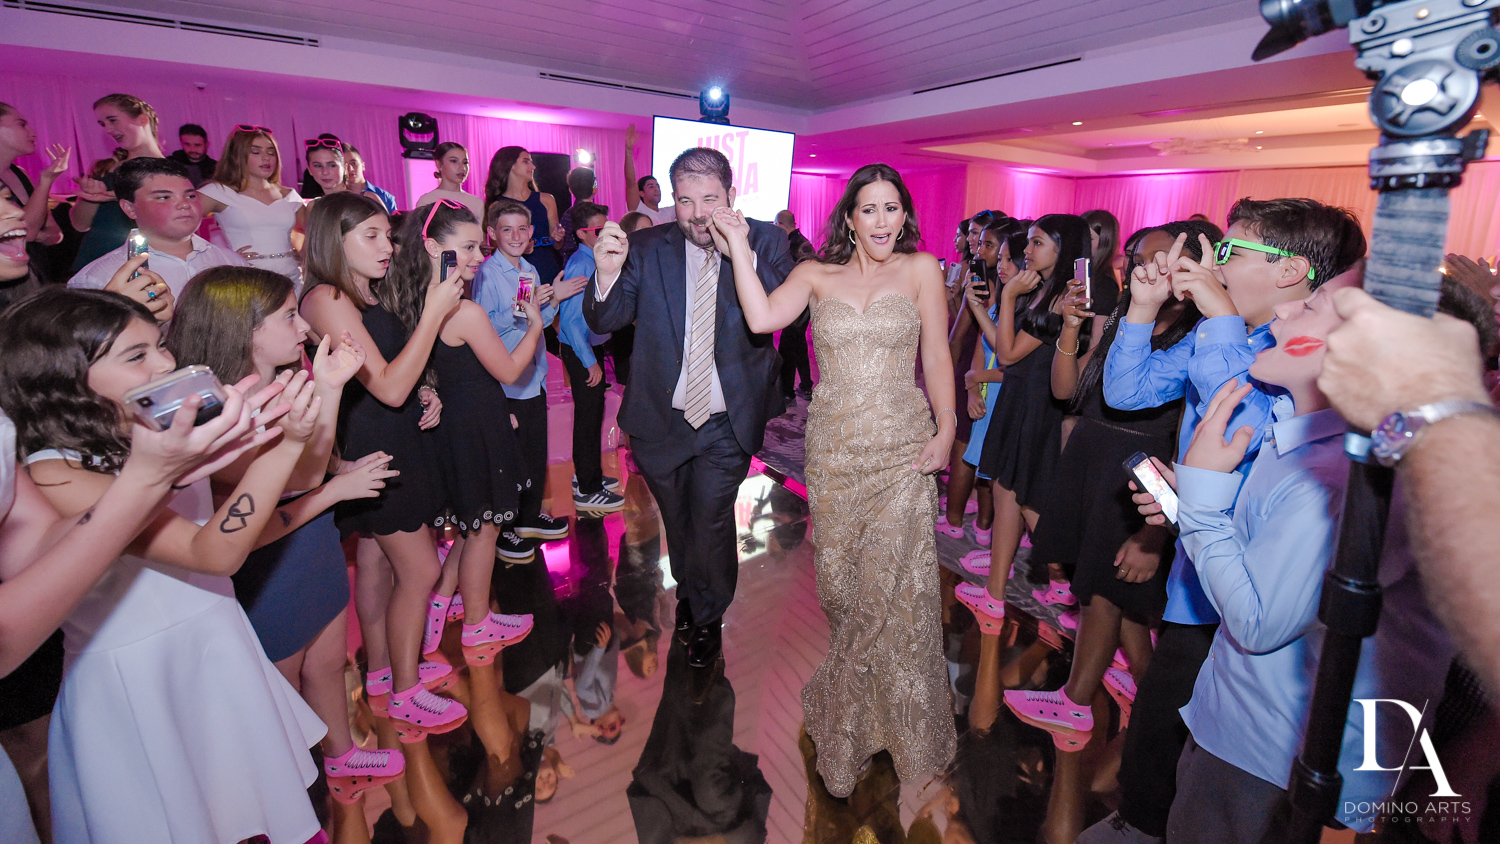 Fun party bat mitzvah pictures at Amazing trendy organic balloon decor at pink bat mitzvah at Saint Andrews Country Club South Florida by Domino Arts Photography